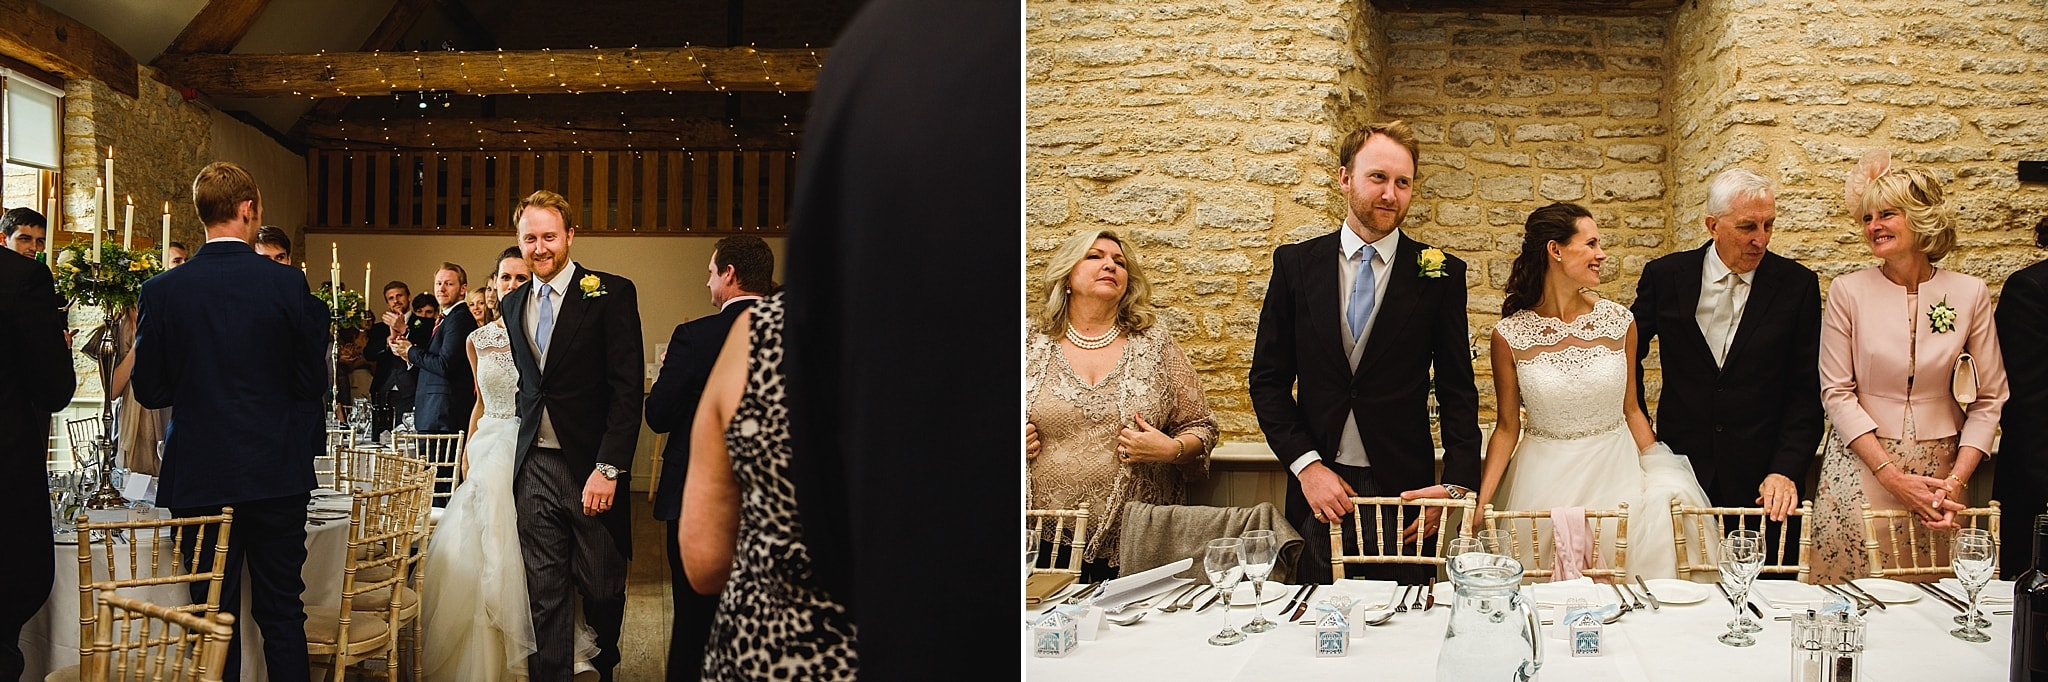 Photo of the wedding party stood at the tables inside Wick farm